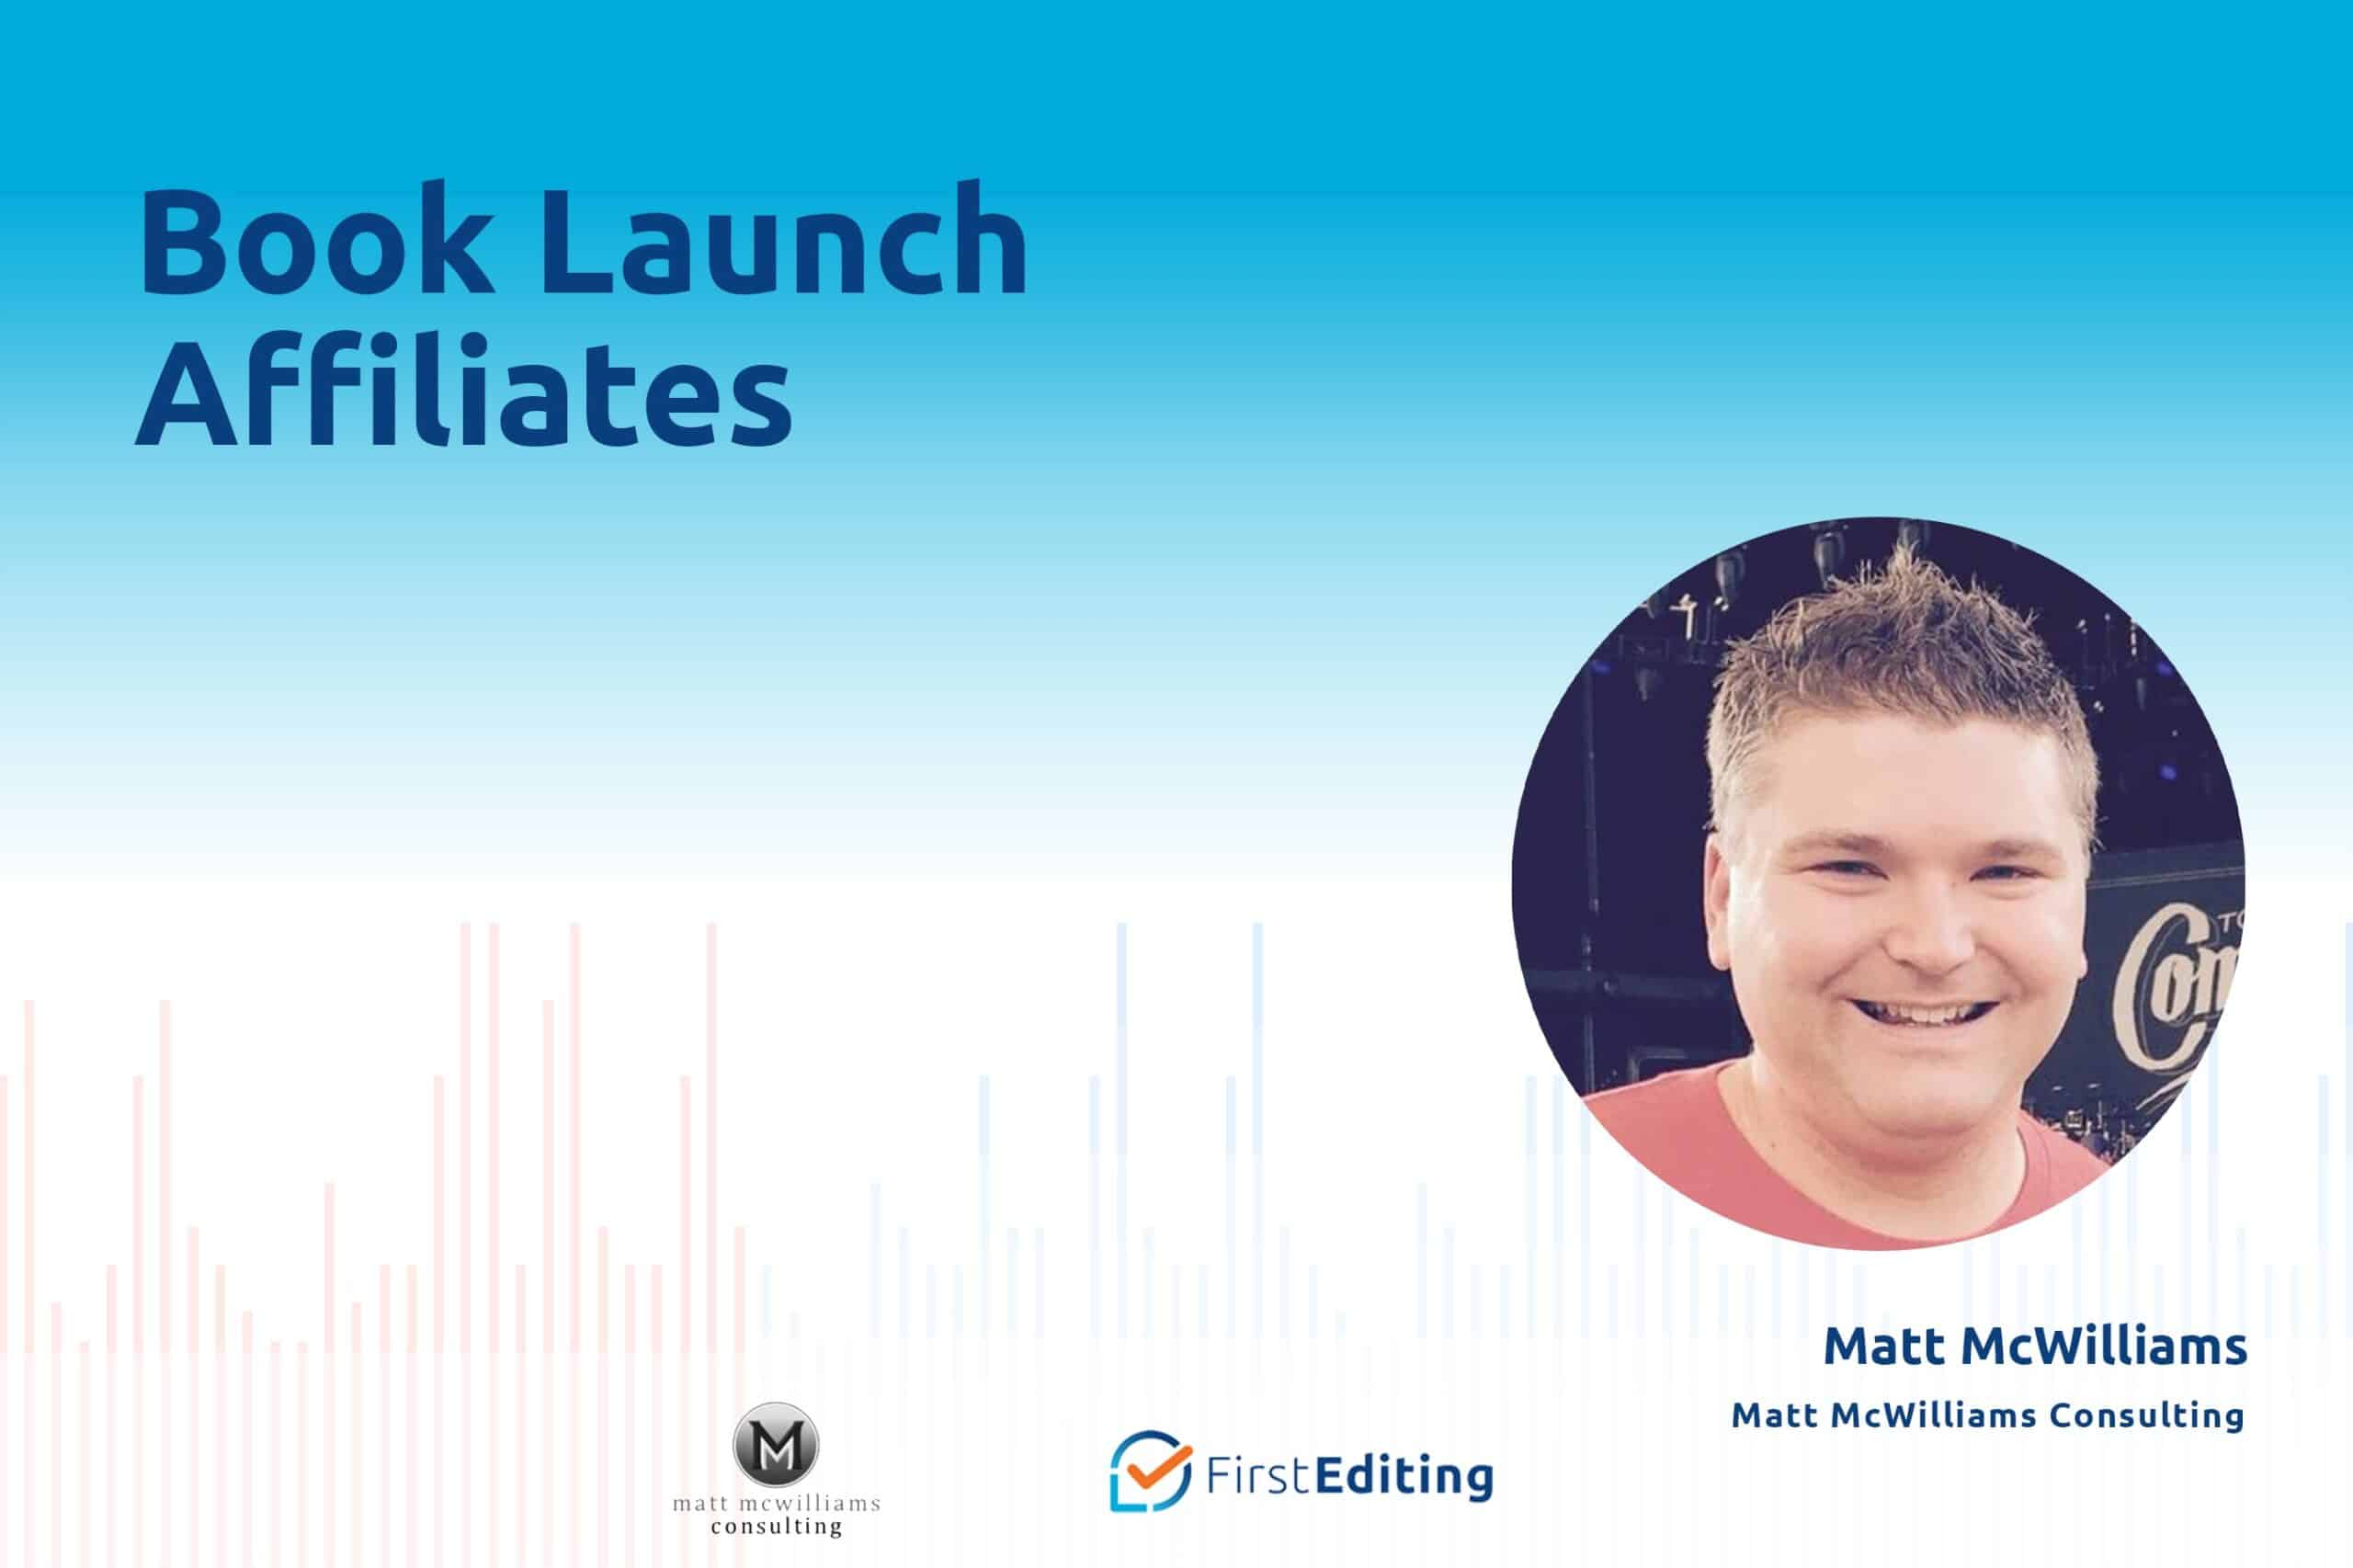 Book Launch Affiliates with Matt McWilliams